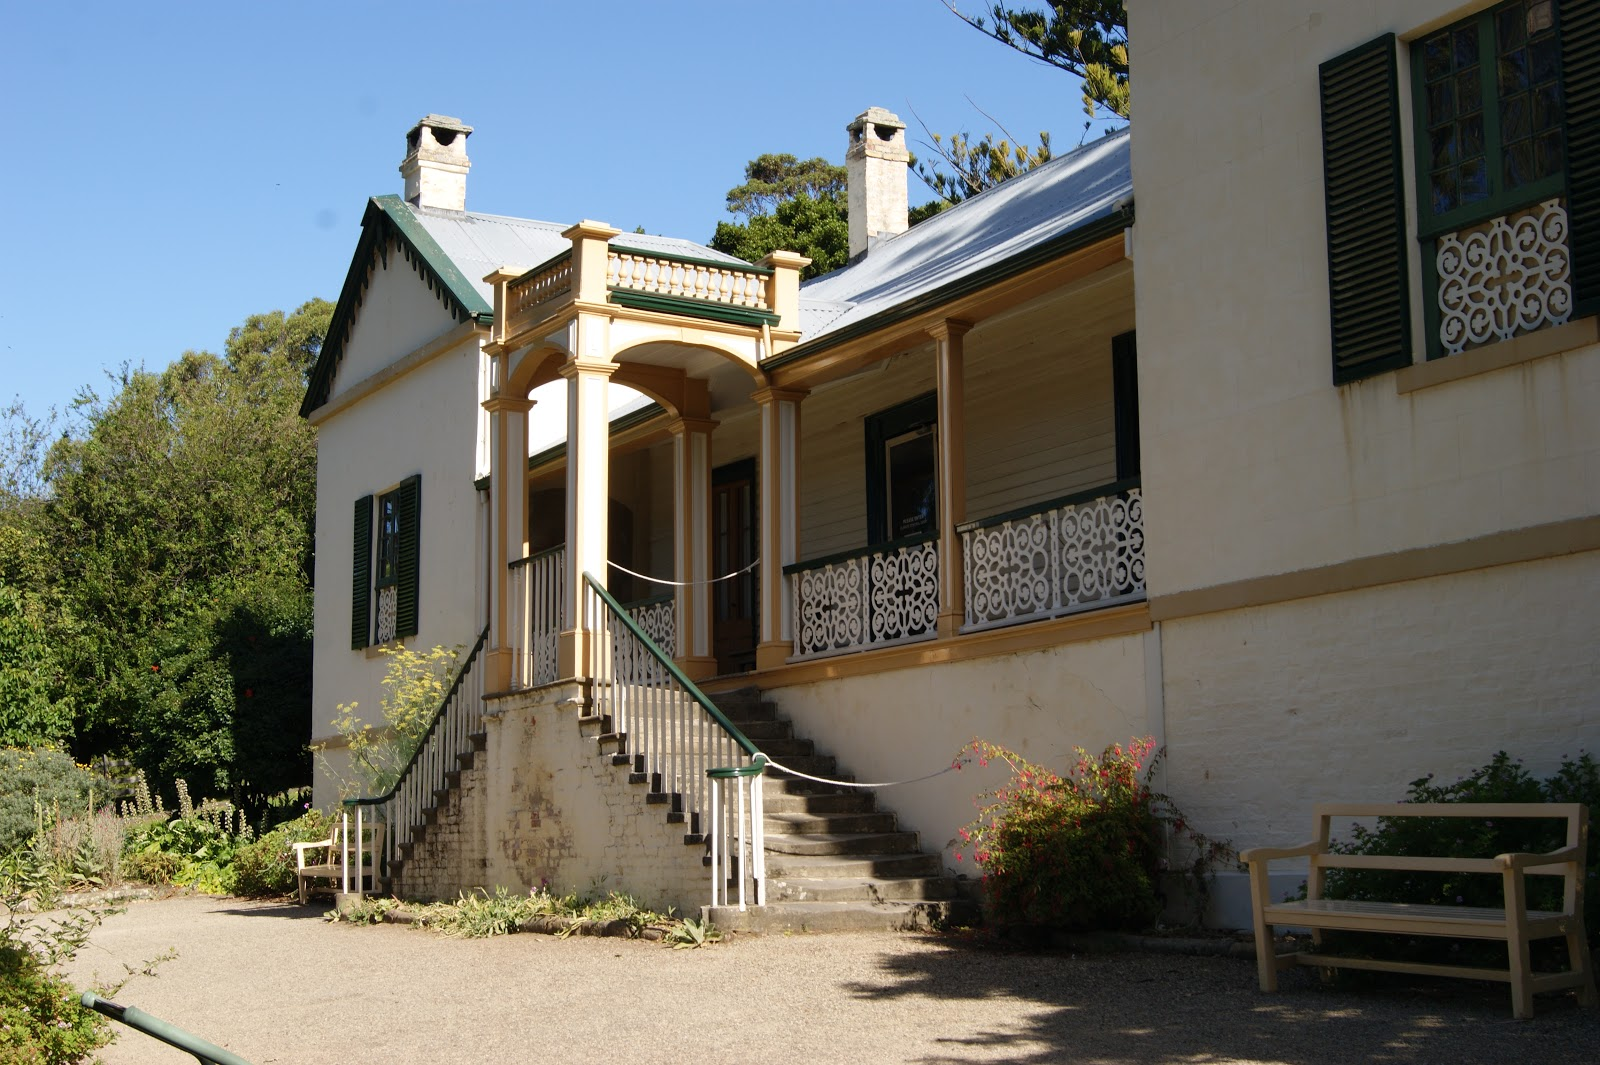 On the convict trail the commandants house port arthur main text information sources malvernweather Choice Image